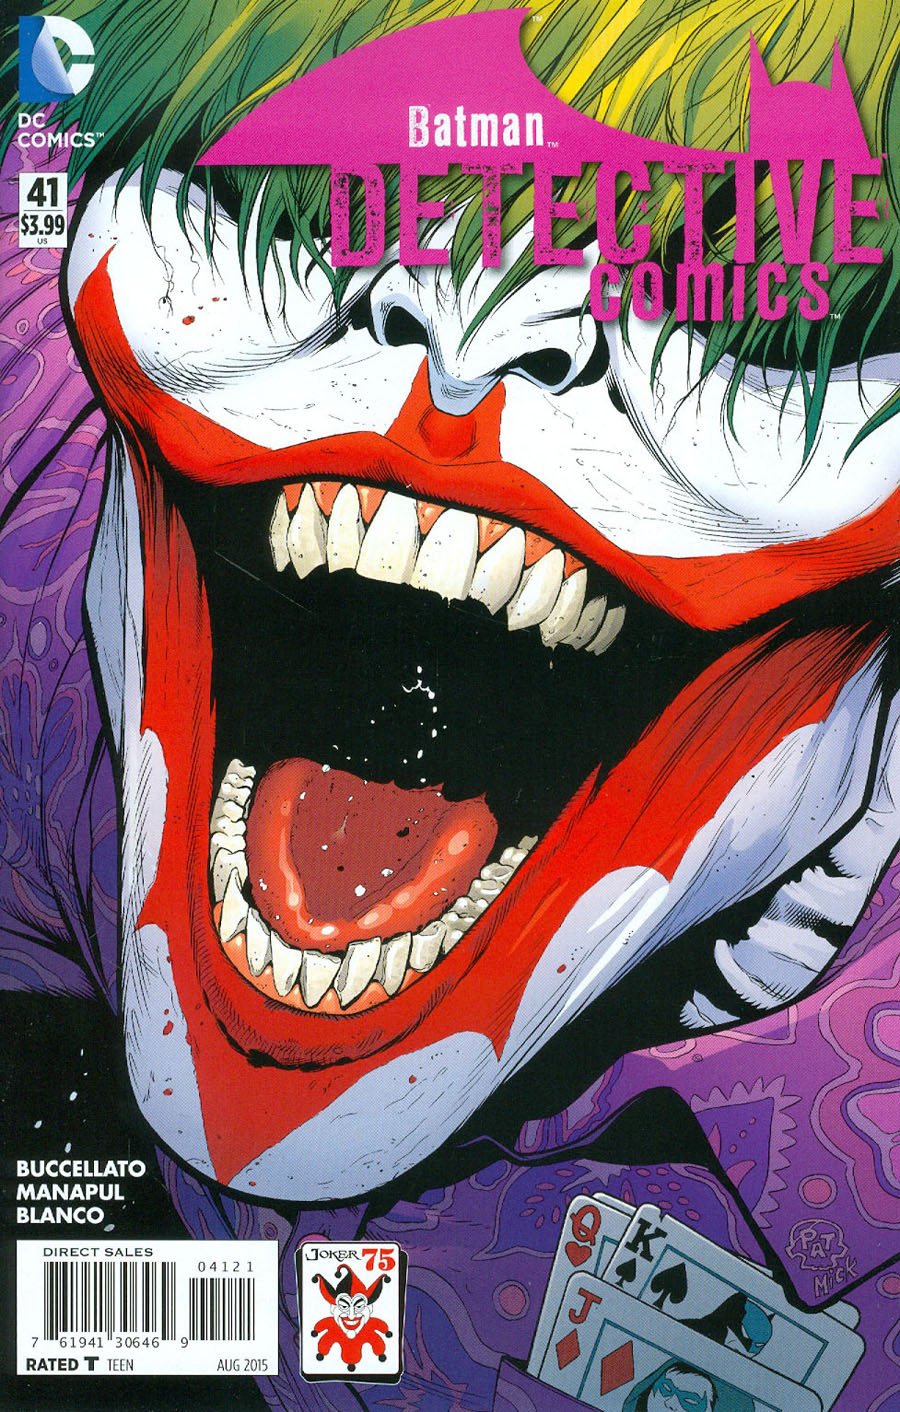 Detective Comics Vol 2 #41 Cover B Variant Patrick Gleason The Joker 75th Anniversary Cover